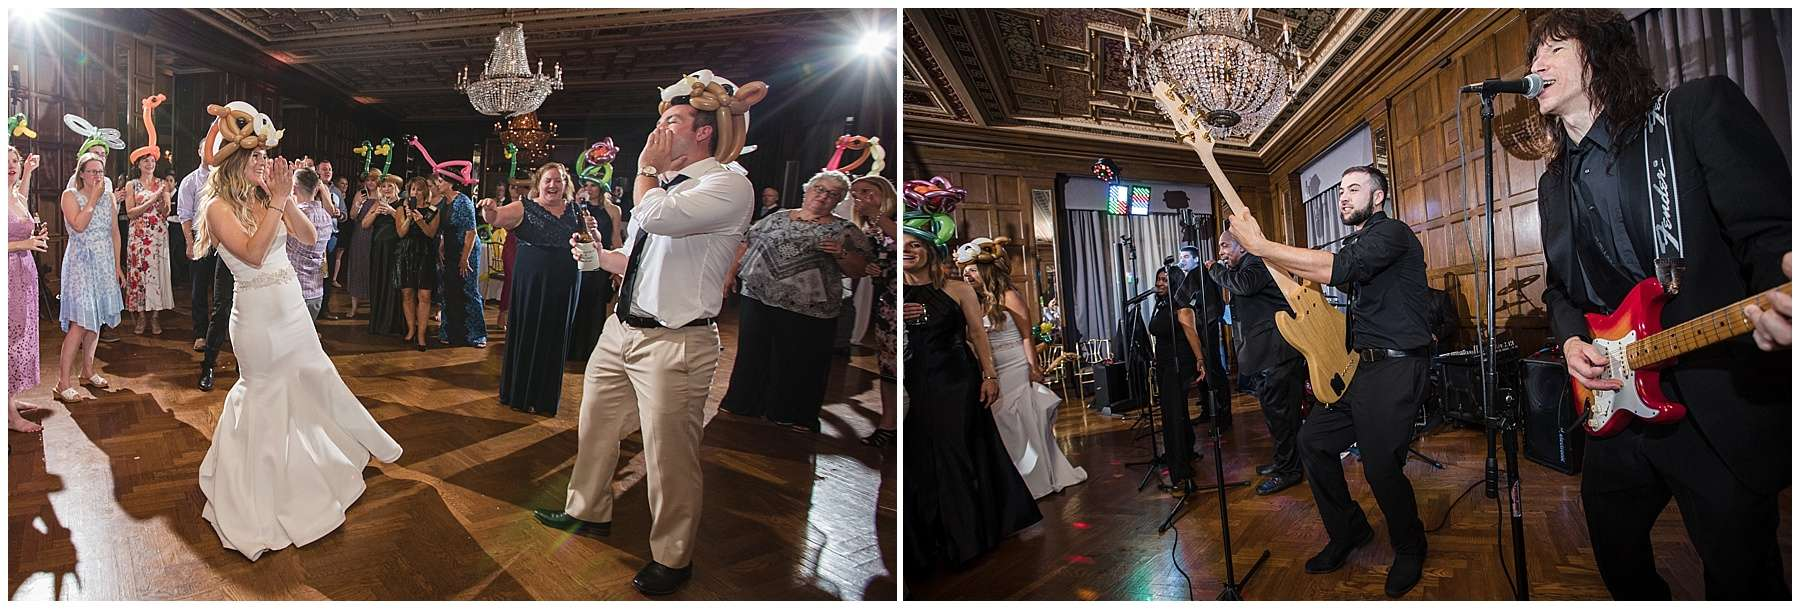 a bride and groom wearing colorful balloon hats dancing and laughing at a wedding reception while a live band plays music